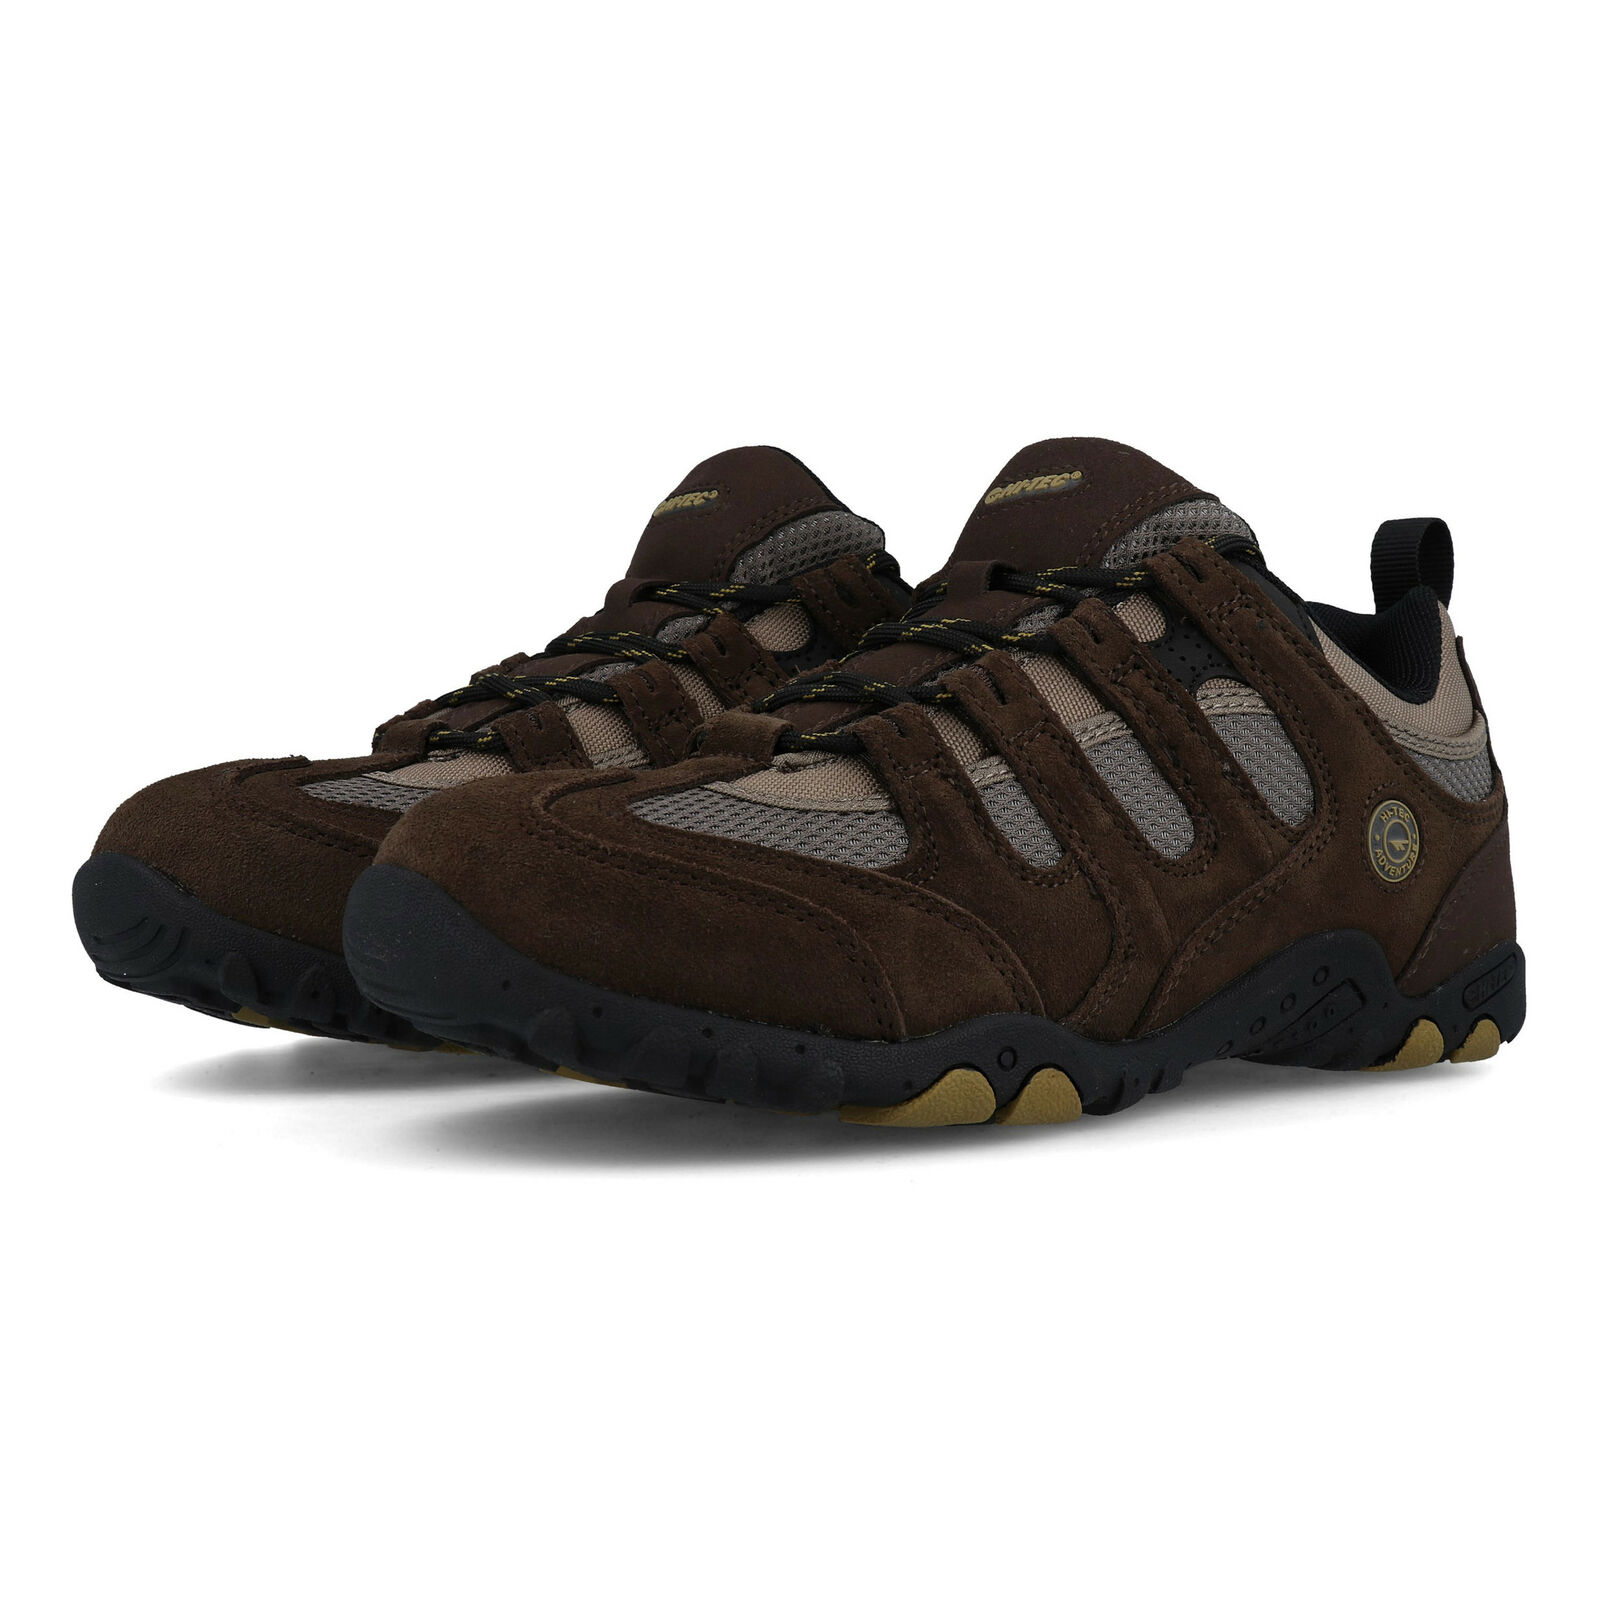 Hi-Tec Mens Quadra Classic Walking shoes Brown Sports Outdoors Breathable Suede